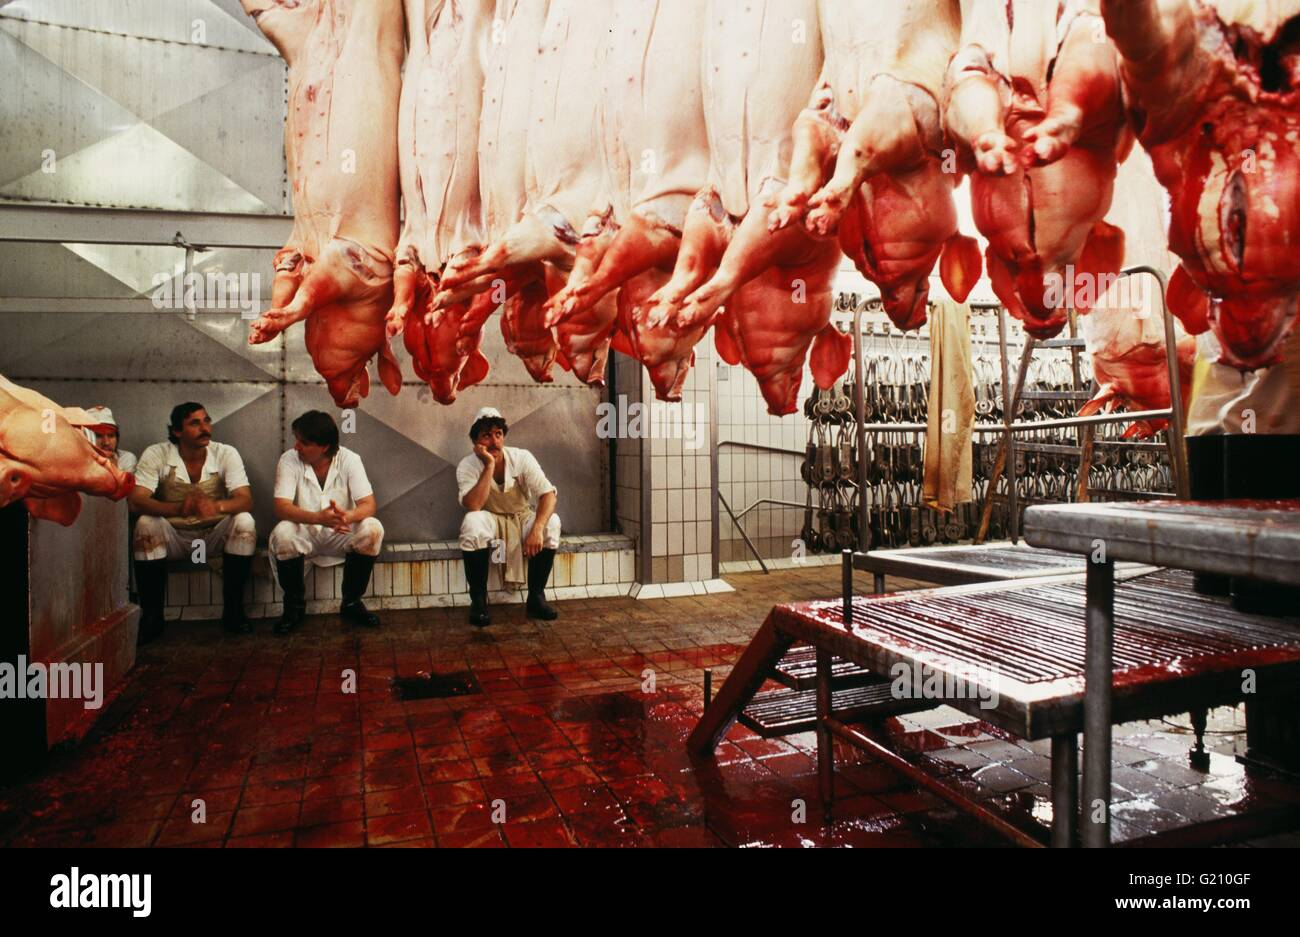 Czech Republic - Studena. Slaughter house. Dead pigs hanging from hooks while butchers take five - Stock Image